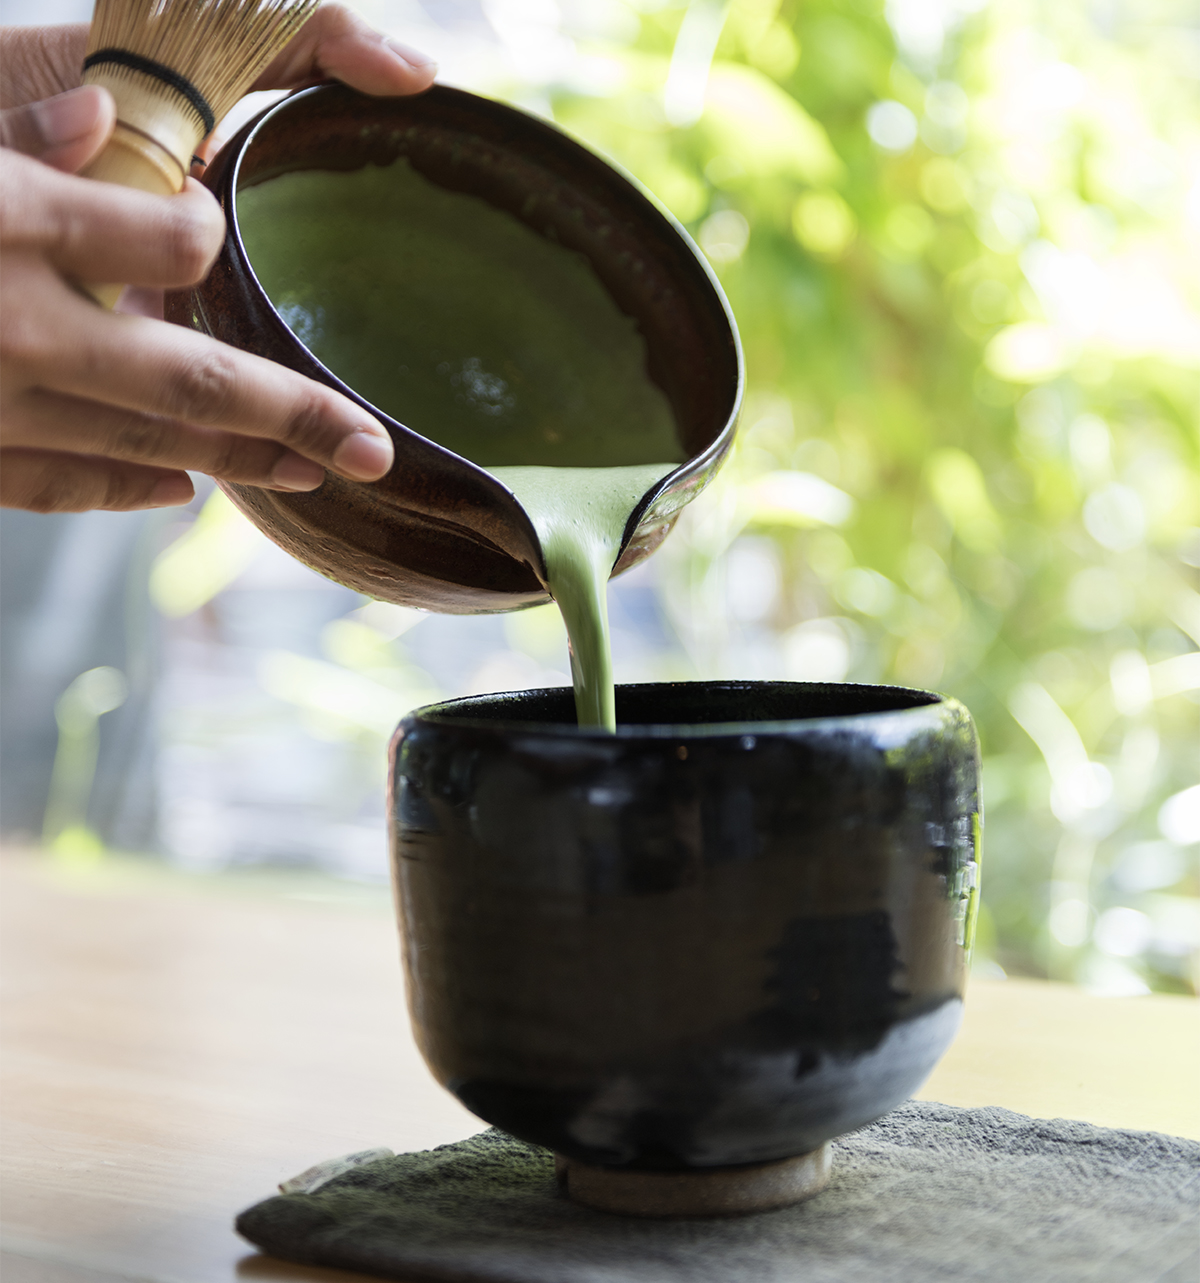 Pouring Matcha into cup